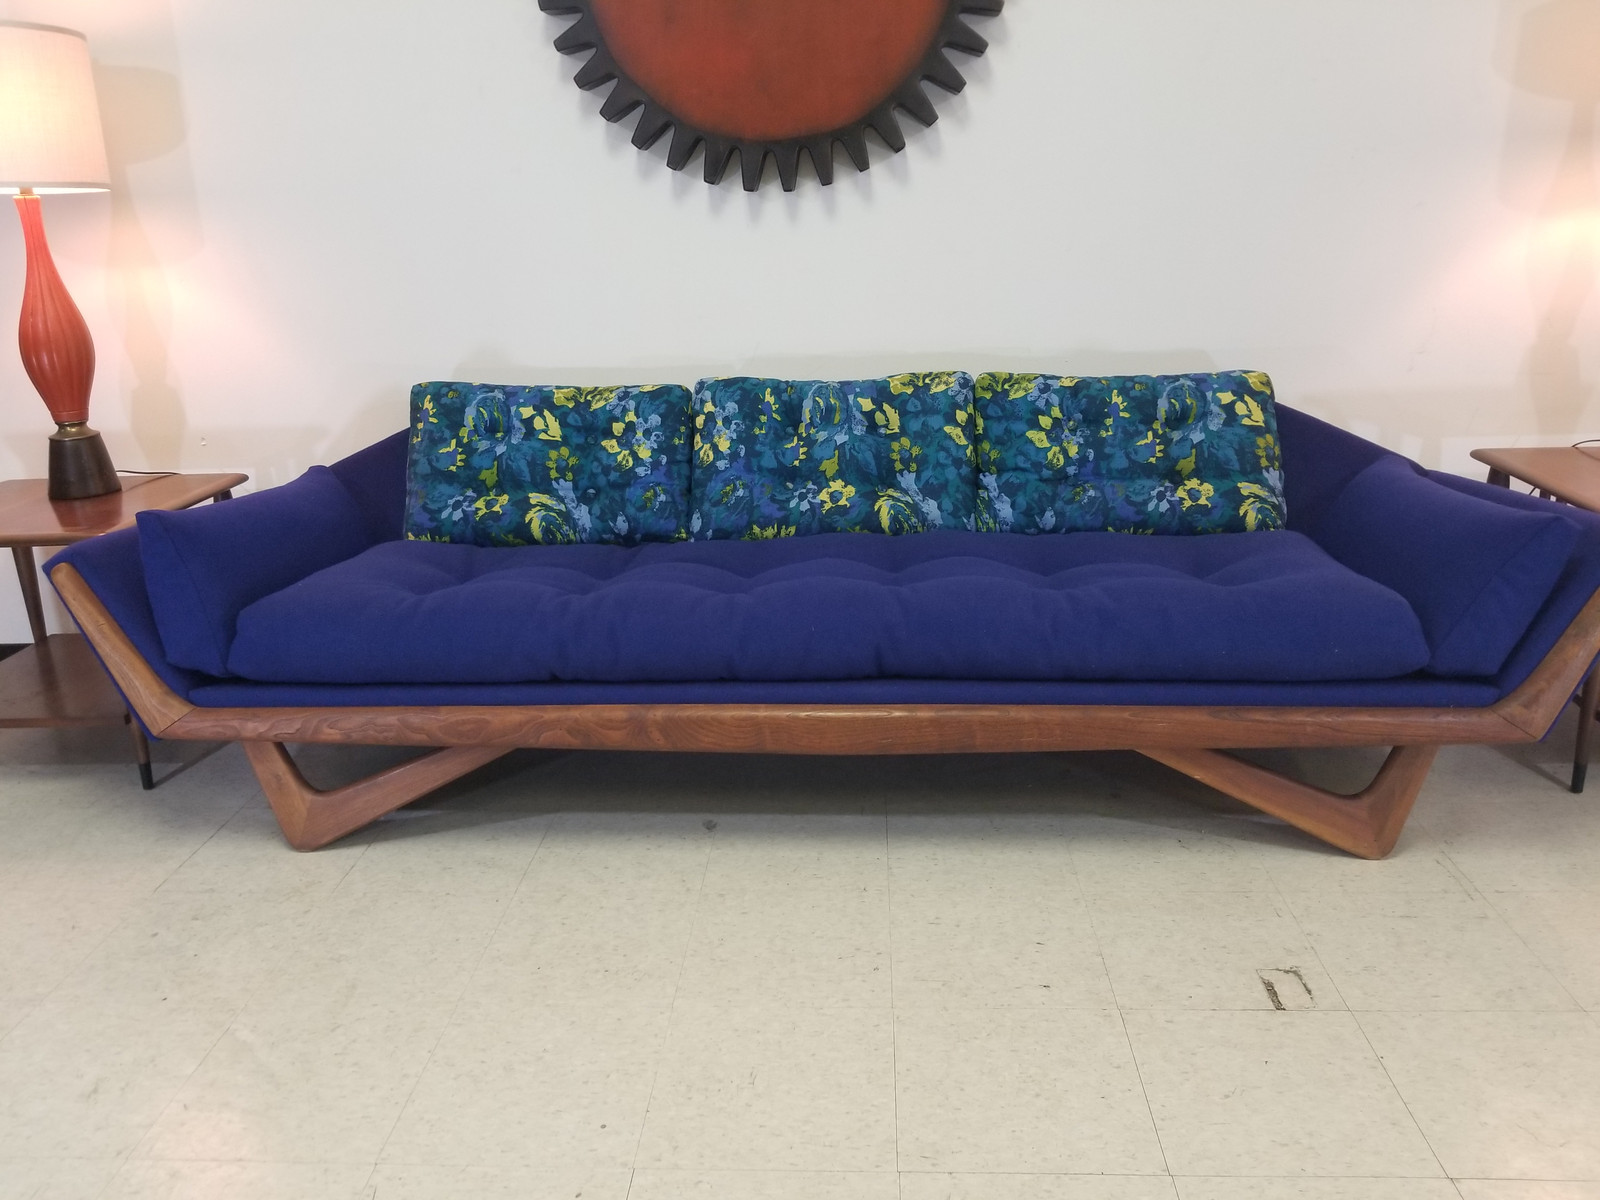 cambridge decorative cover covers va futon replacement inspirational seater futons by two richmond